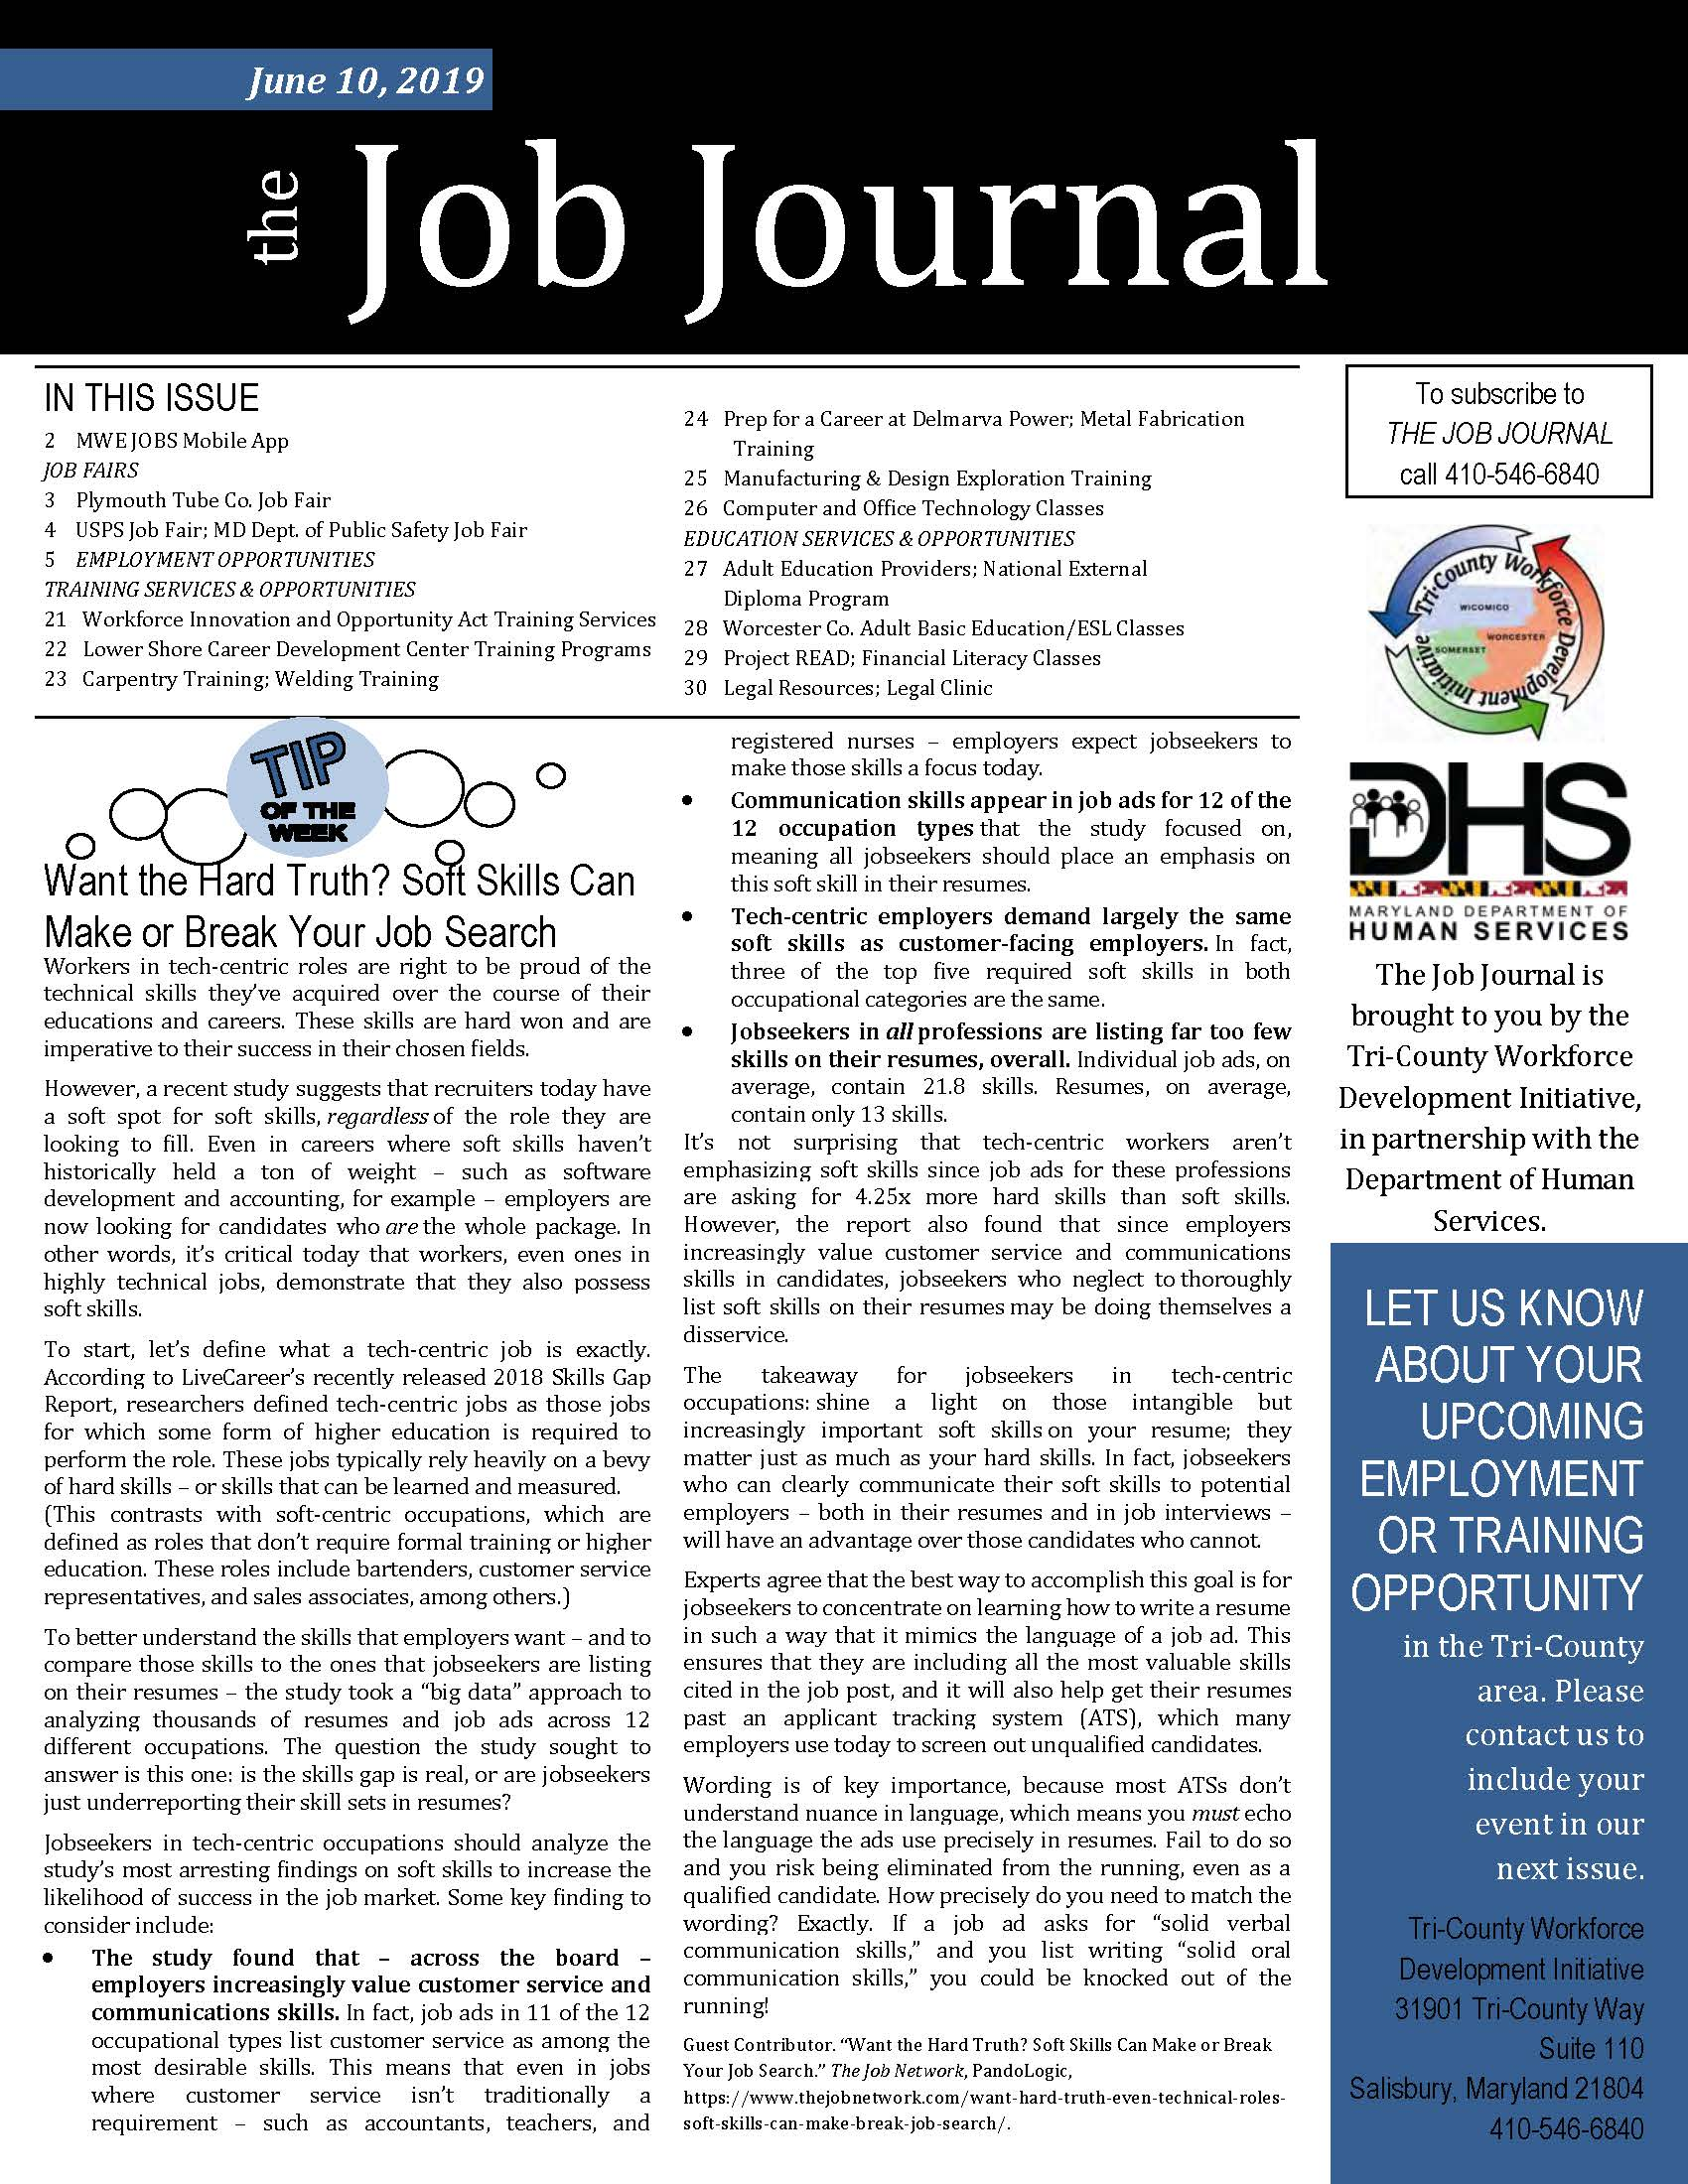 Surprising The Job Journal June 10 2019 American Job Center Download Free Architecture Designs Scobabritishbridgeorg